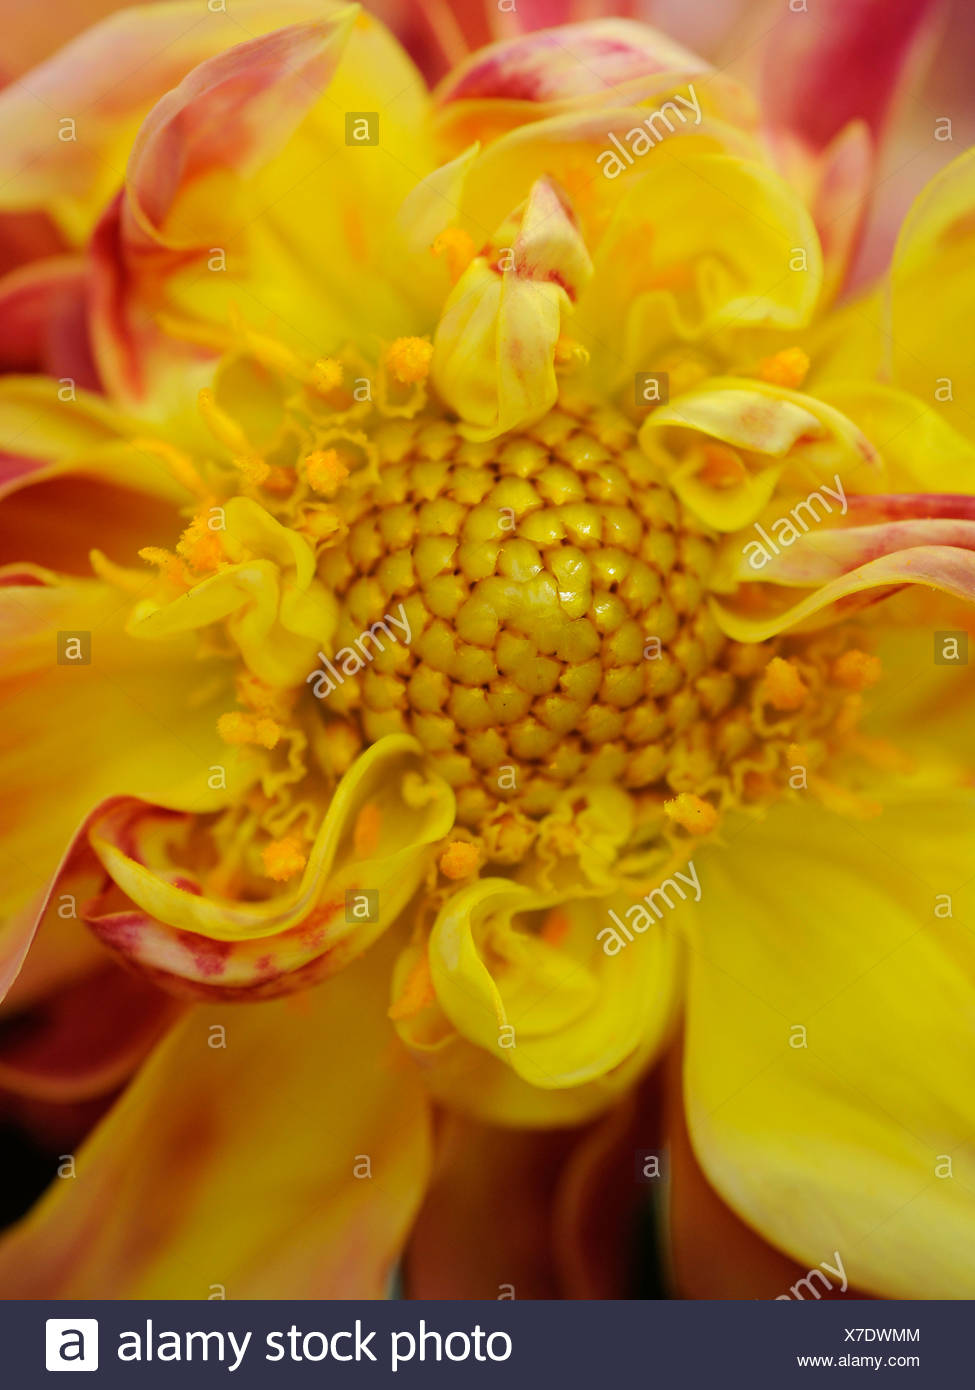 The inside of a freshly cut dahlia flowerhead showing th stamen and pollen - Stock Image